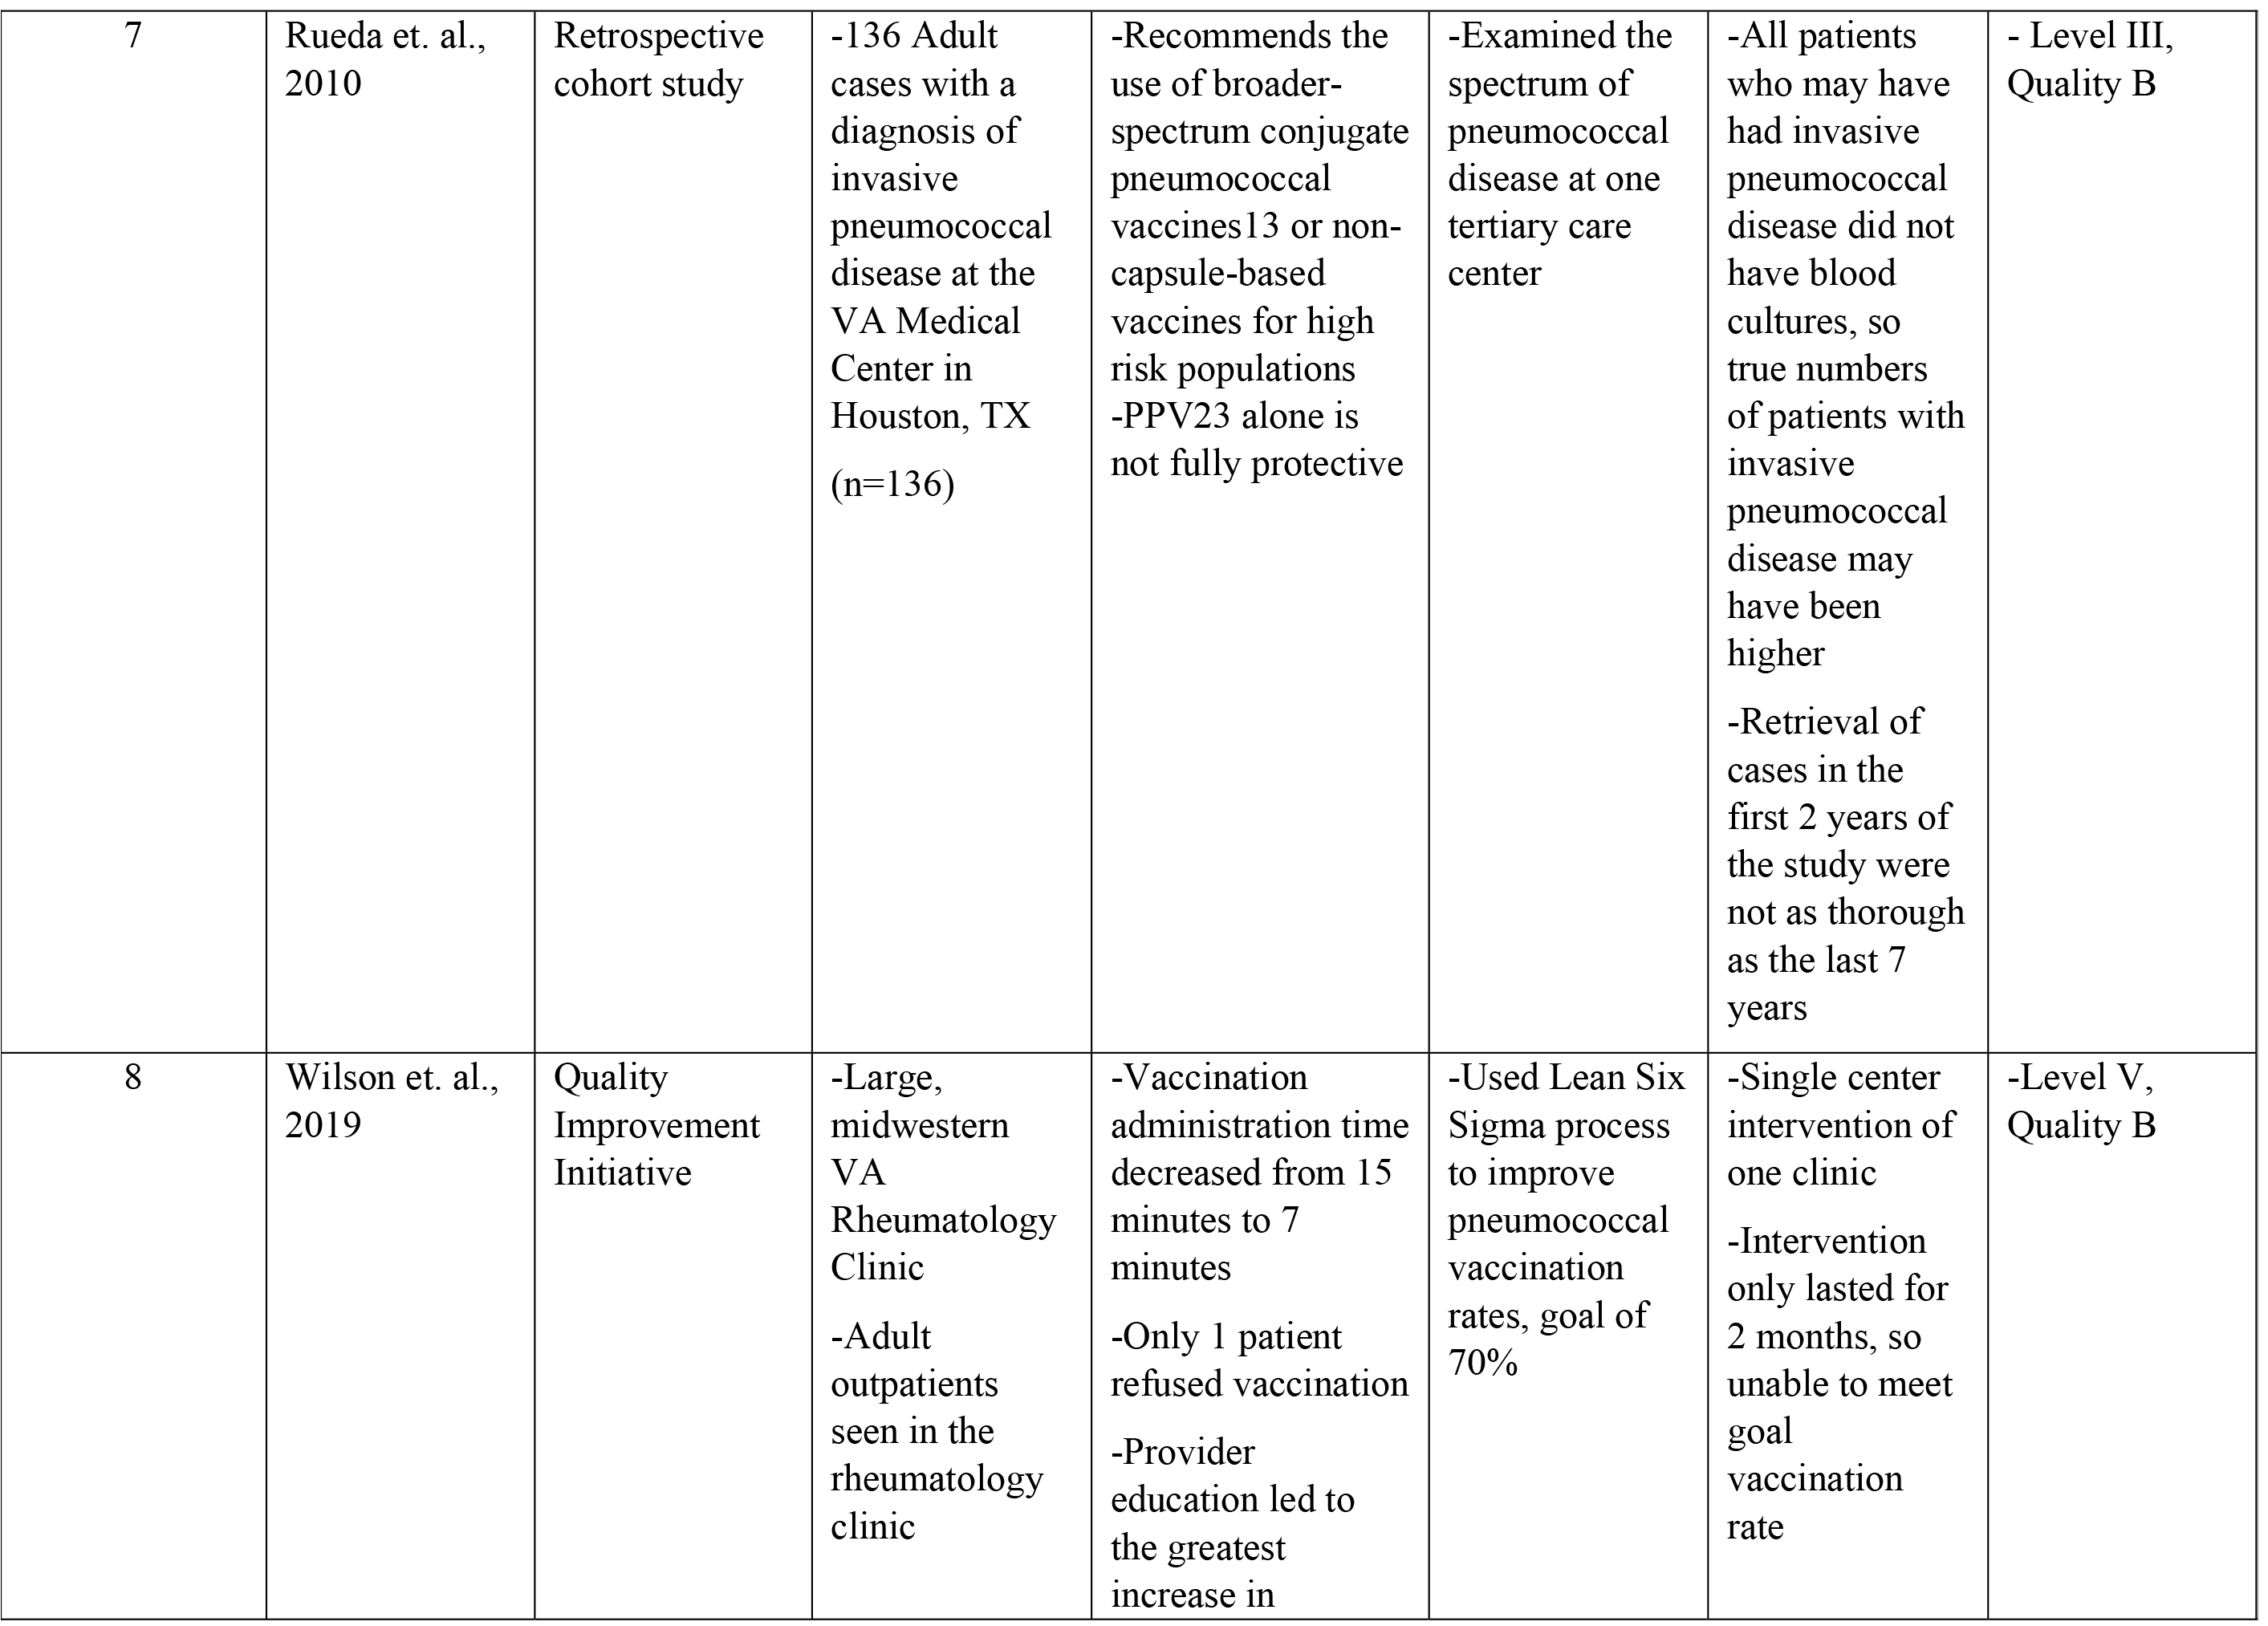 Table of Evidence